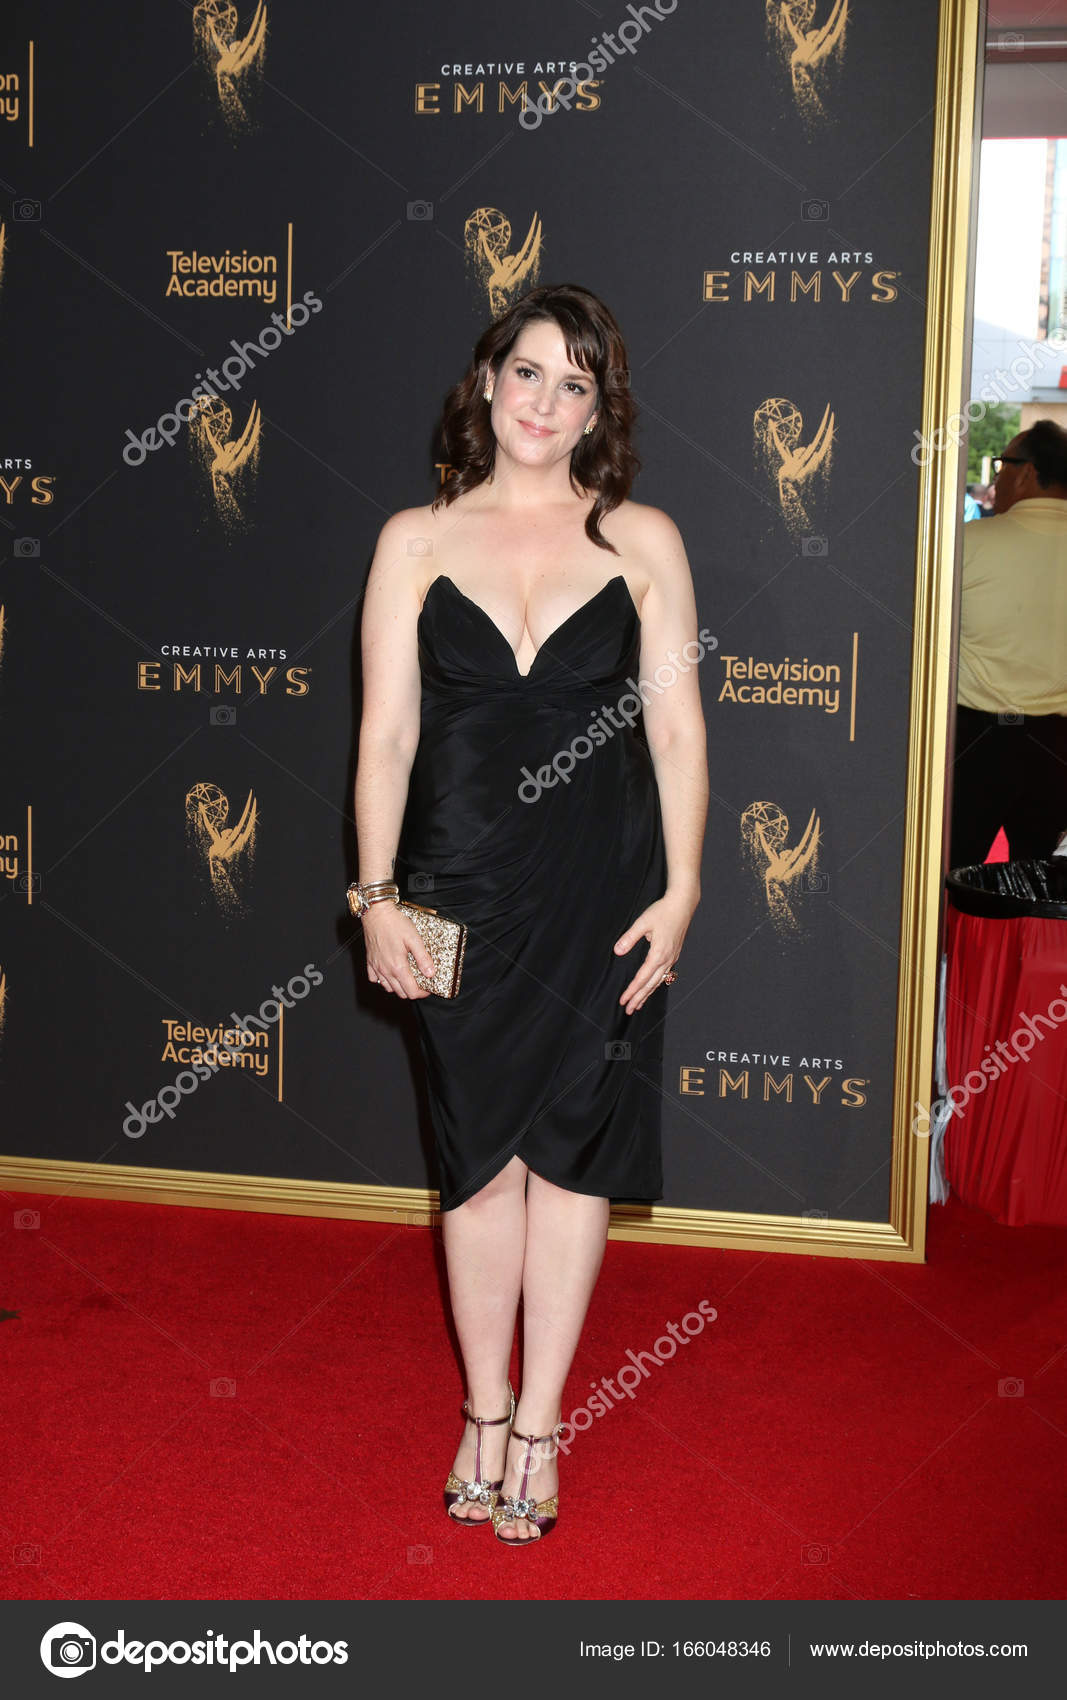 Photos Melanie Lynskey nudes (14 photo), Pussy, Cleavage, Twitter, butt 2018